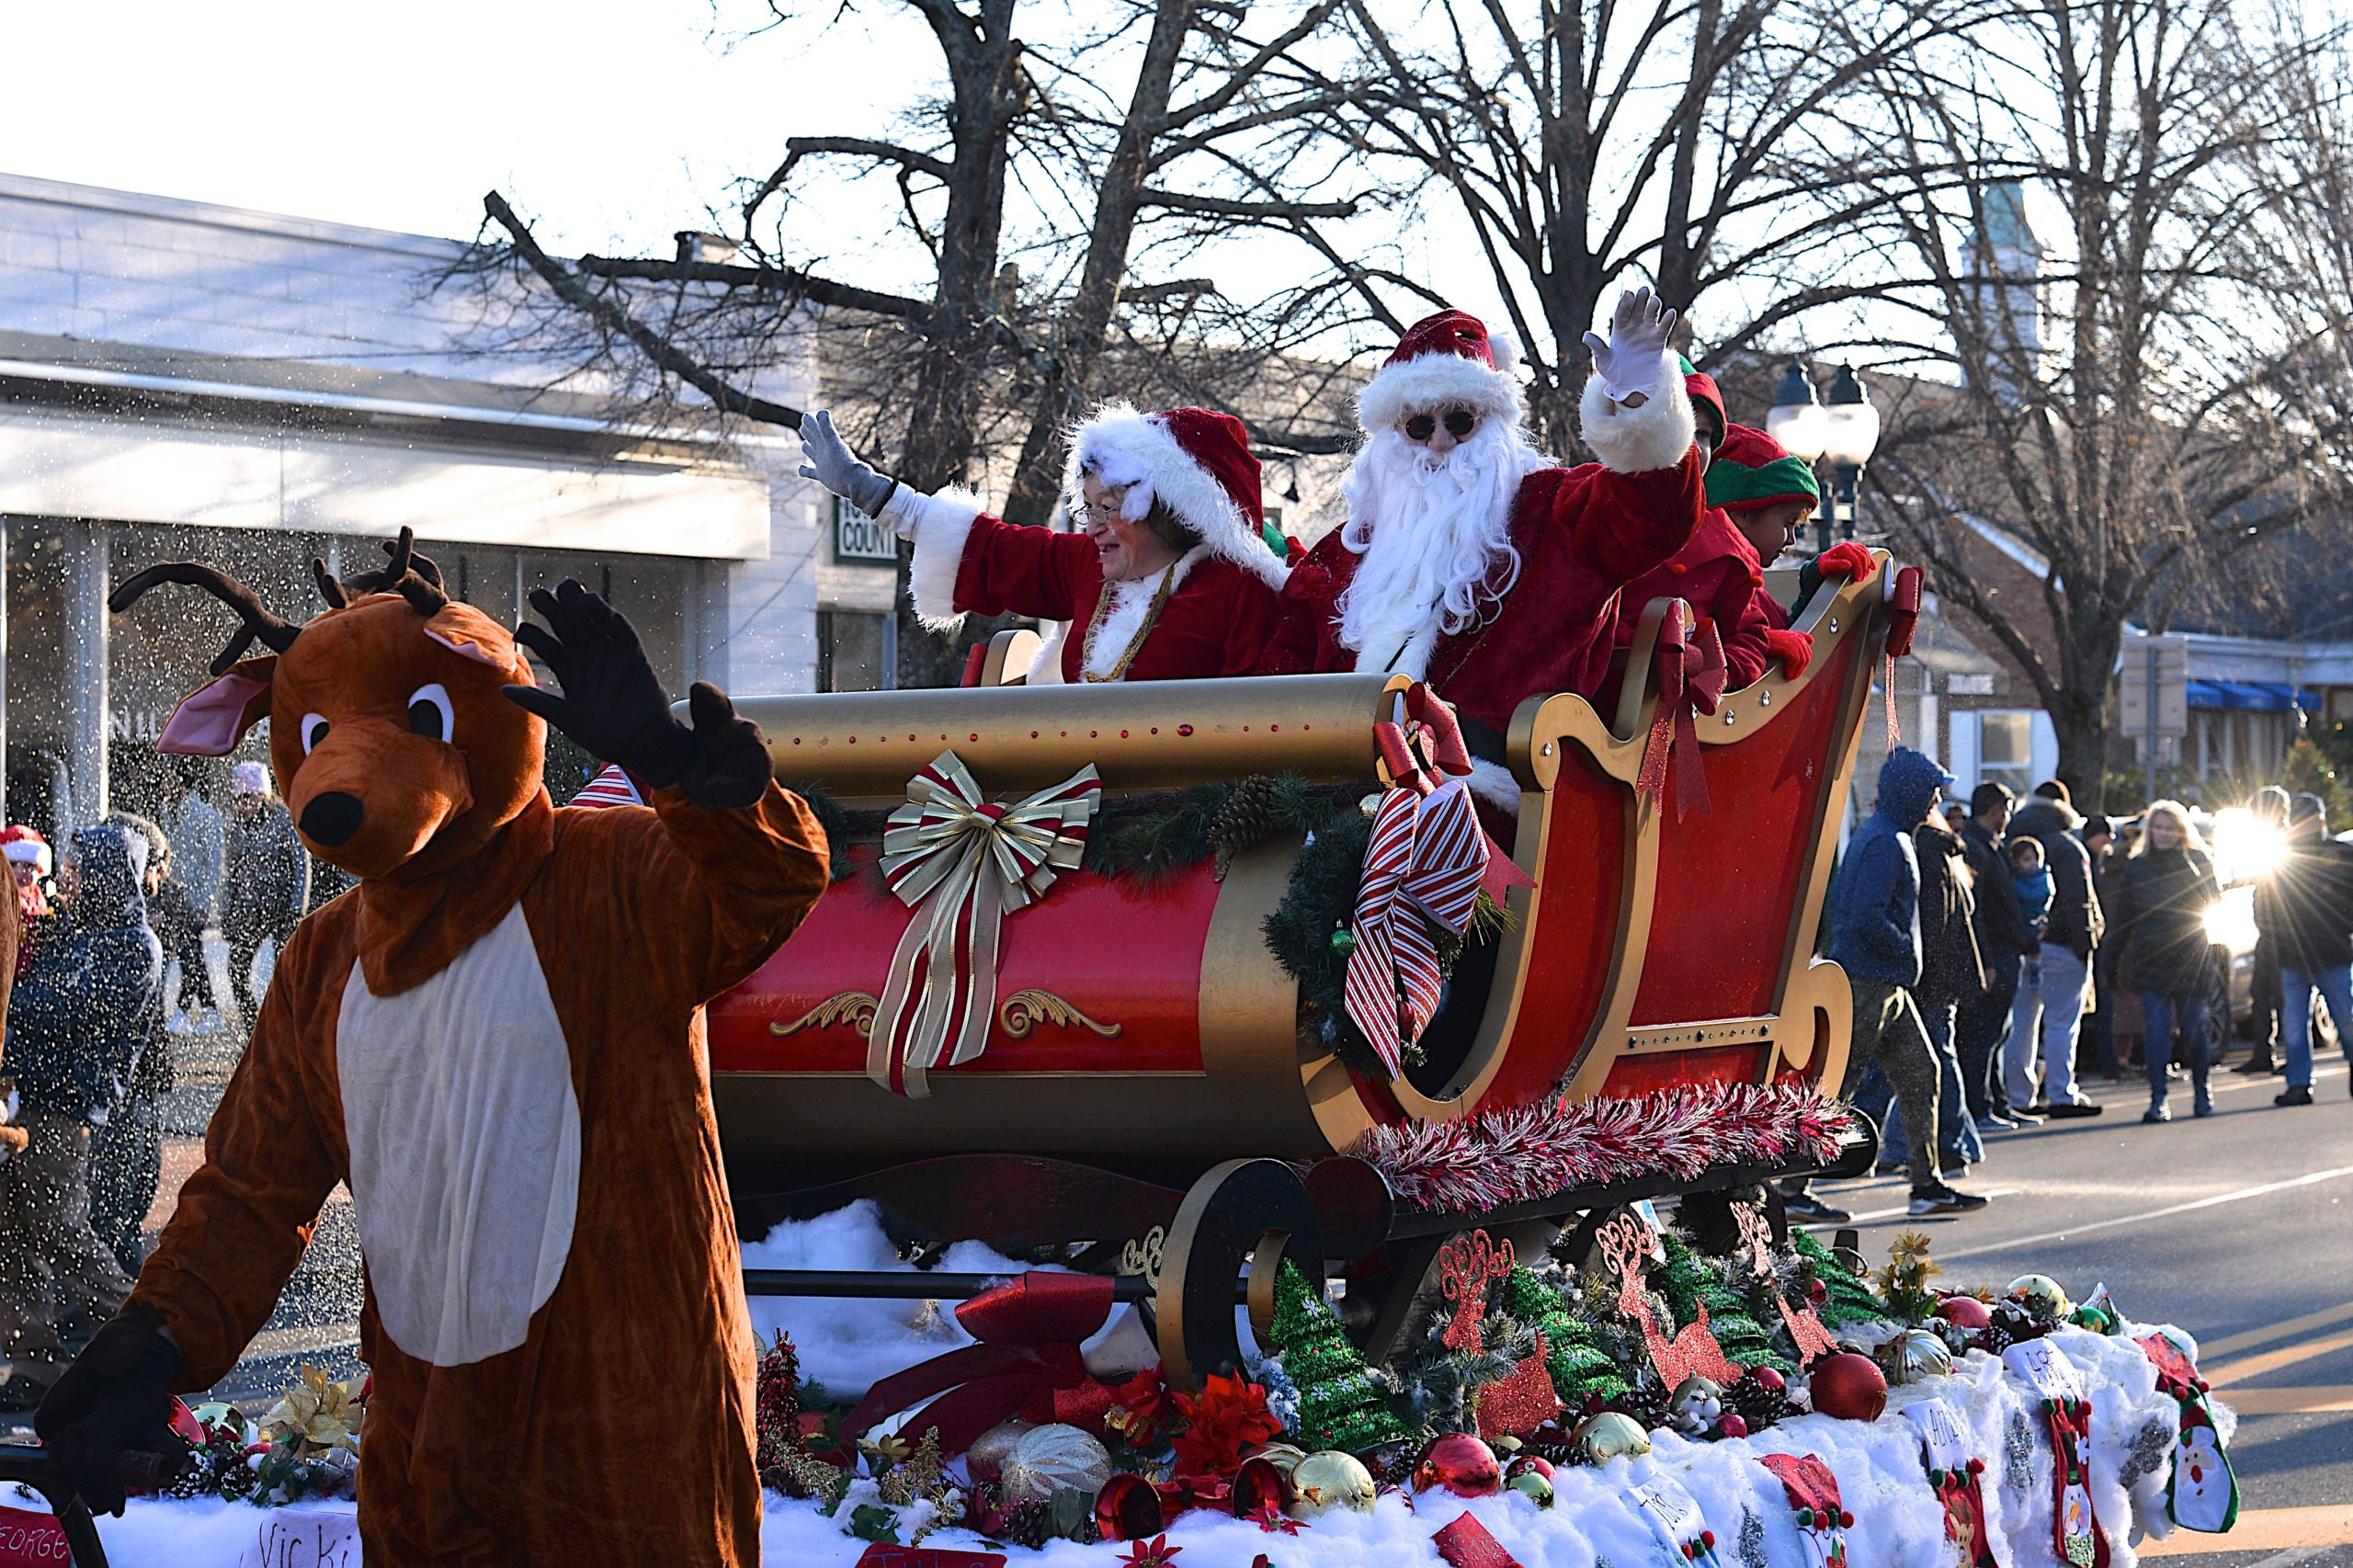 The holiday spirit was on full display Saturday afternoon as the annual Santa parade made its way through East Hampton's Main Street. KYRIL BROMLEY